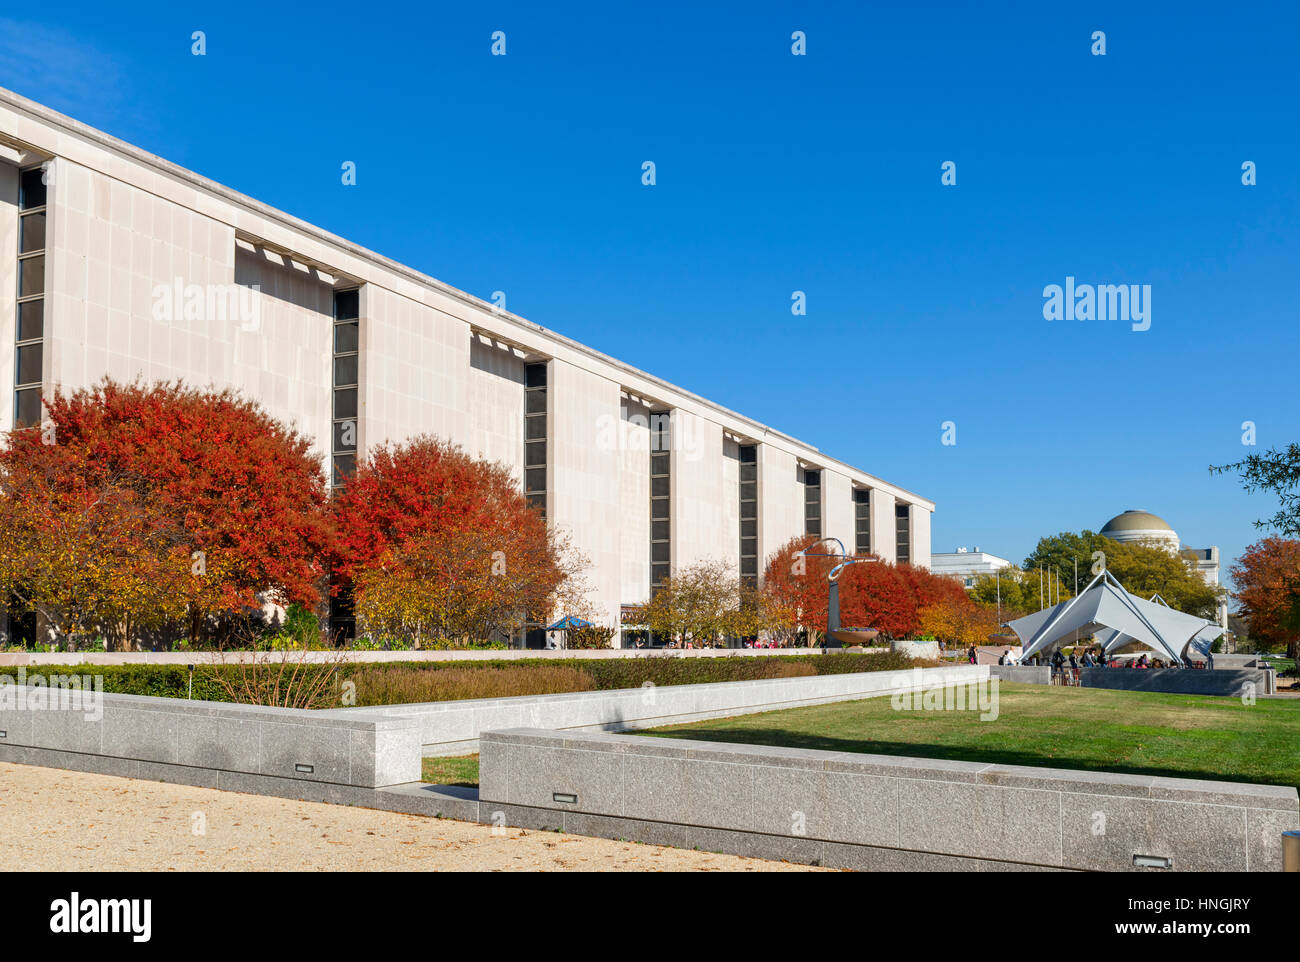 National Museum of American History, Behring Center, National Mall, Washington DC, USA - Stock Image